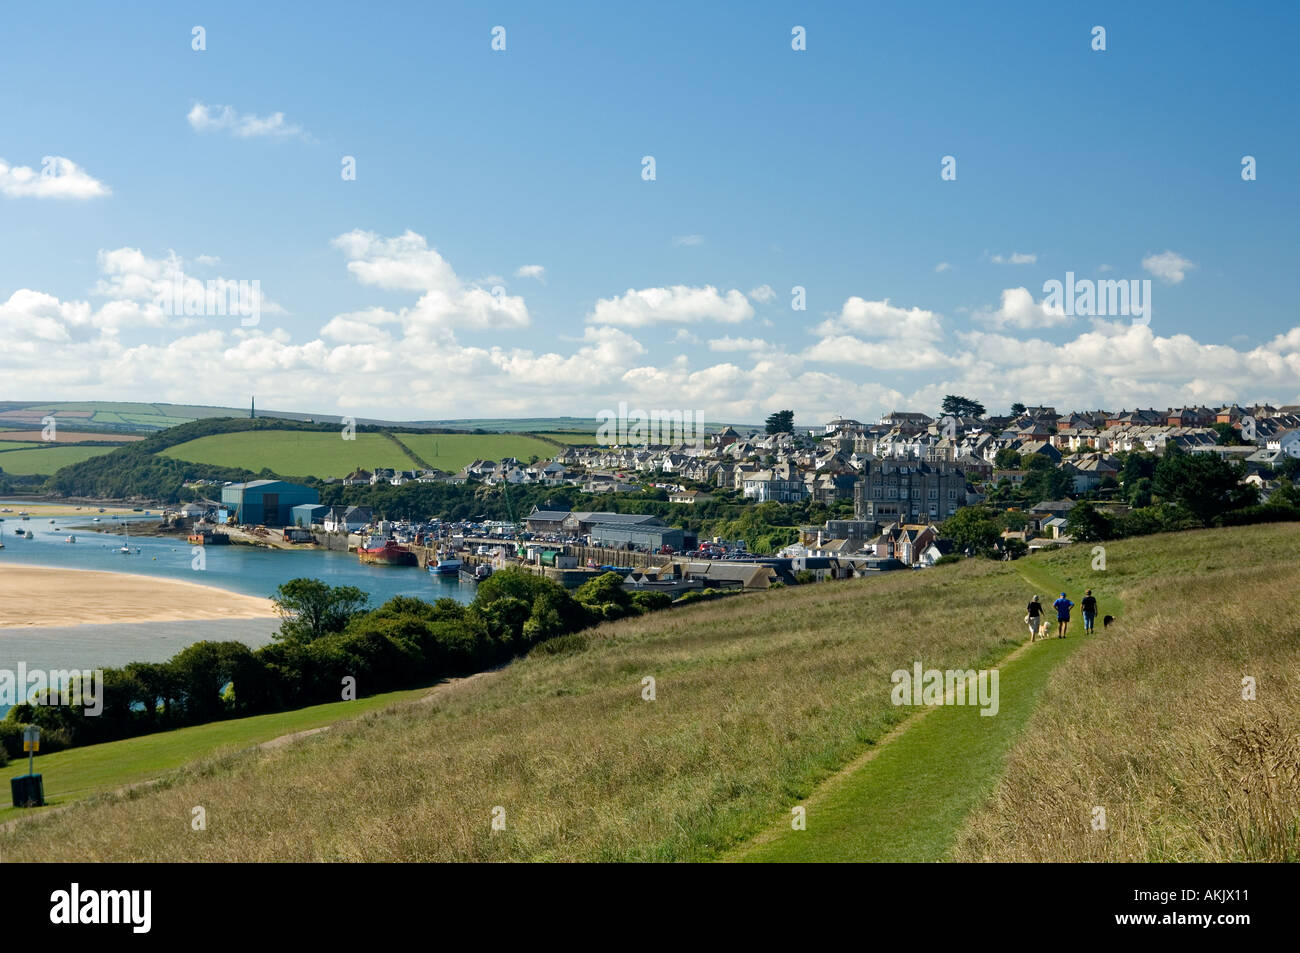 The scene overlooking Padstow from the clifftop path which meanders along the cliffs towards many golden beaches - Stock Image